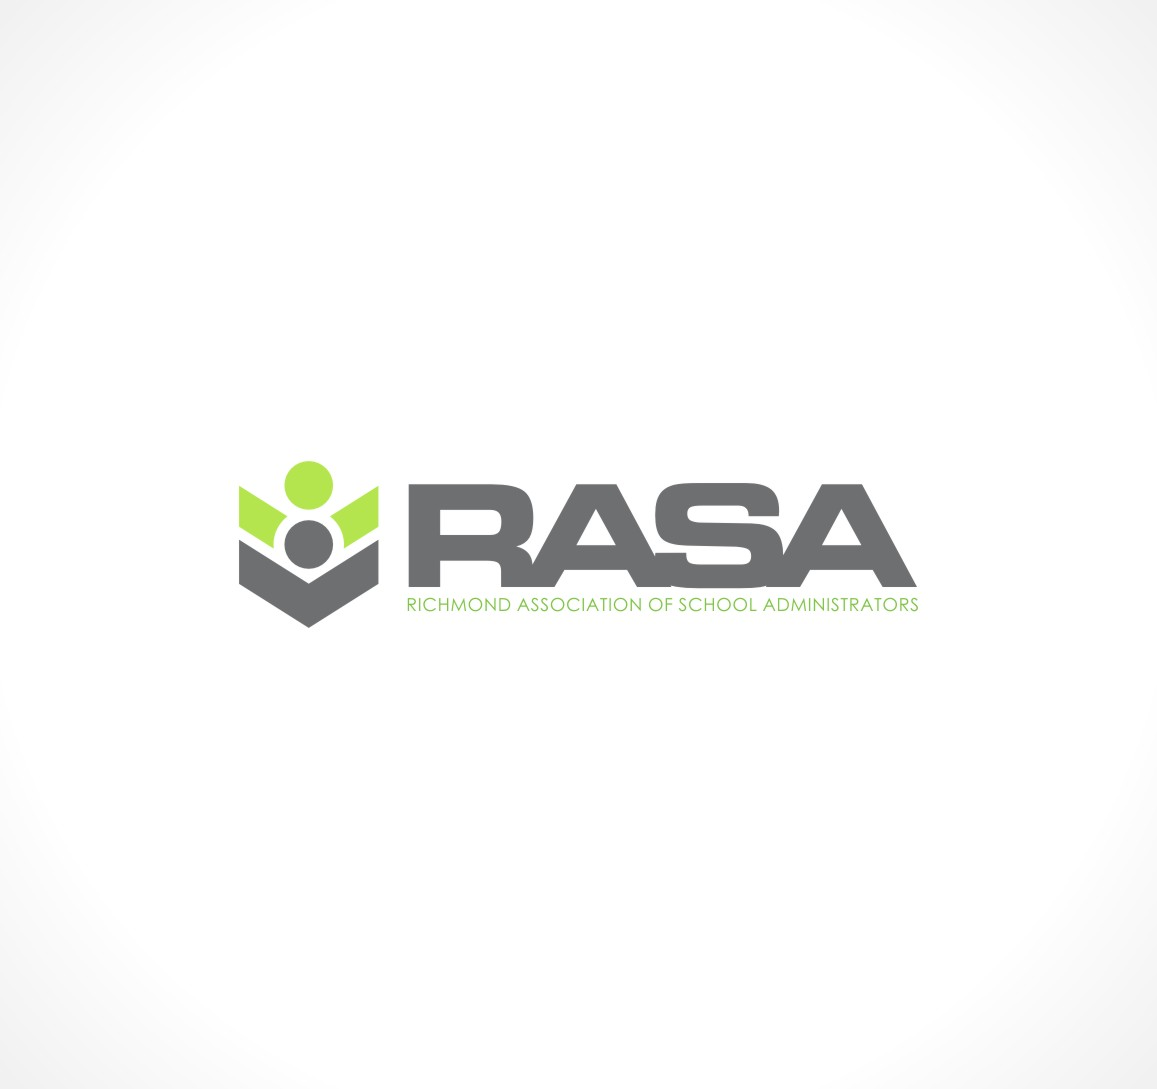 Logo Design by Private User - Entry No. 75 in the Logo Design Contest New Logo Design for RASA - Richmond Association of School Administrato.